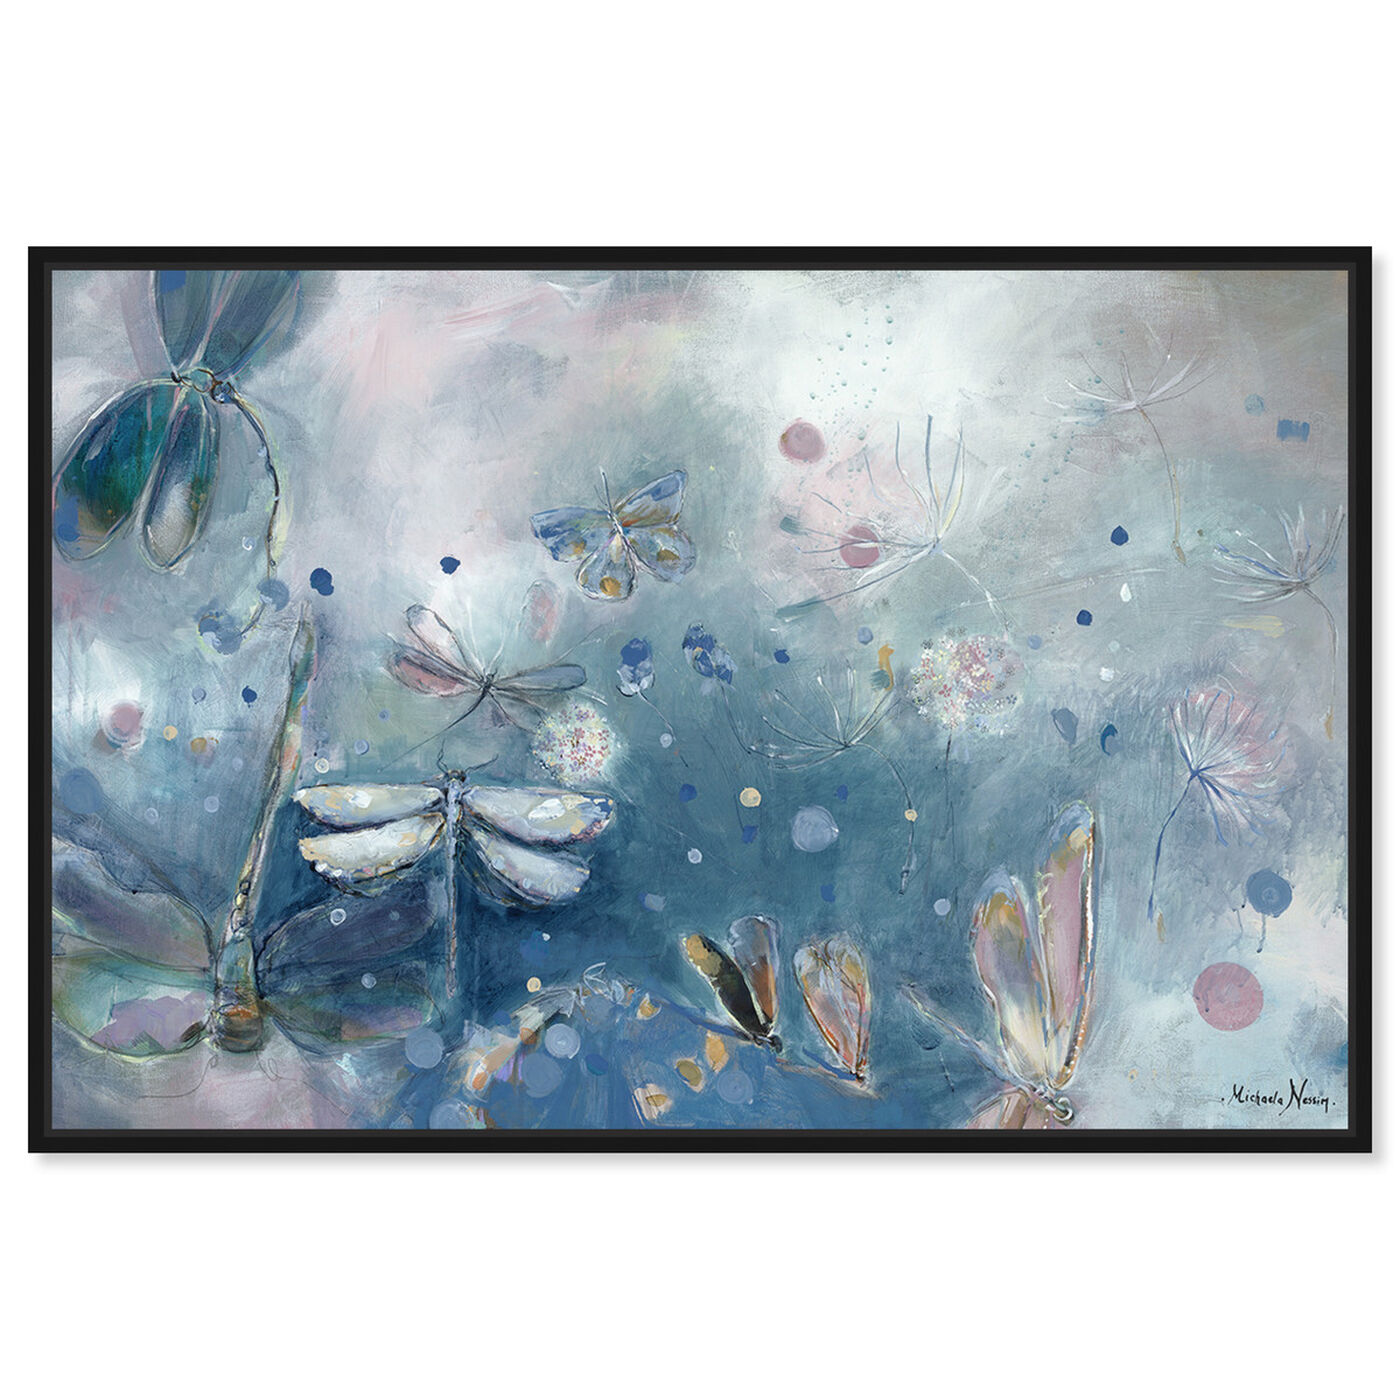 Front view of Michaela Nessim - A dragonfly dream featuring animals and insects art.